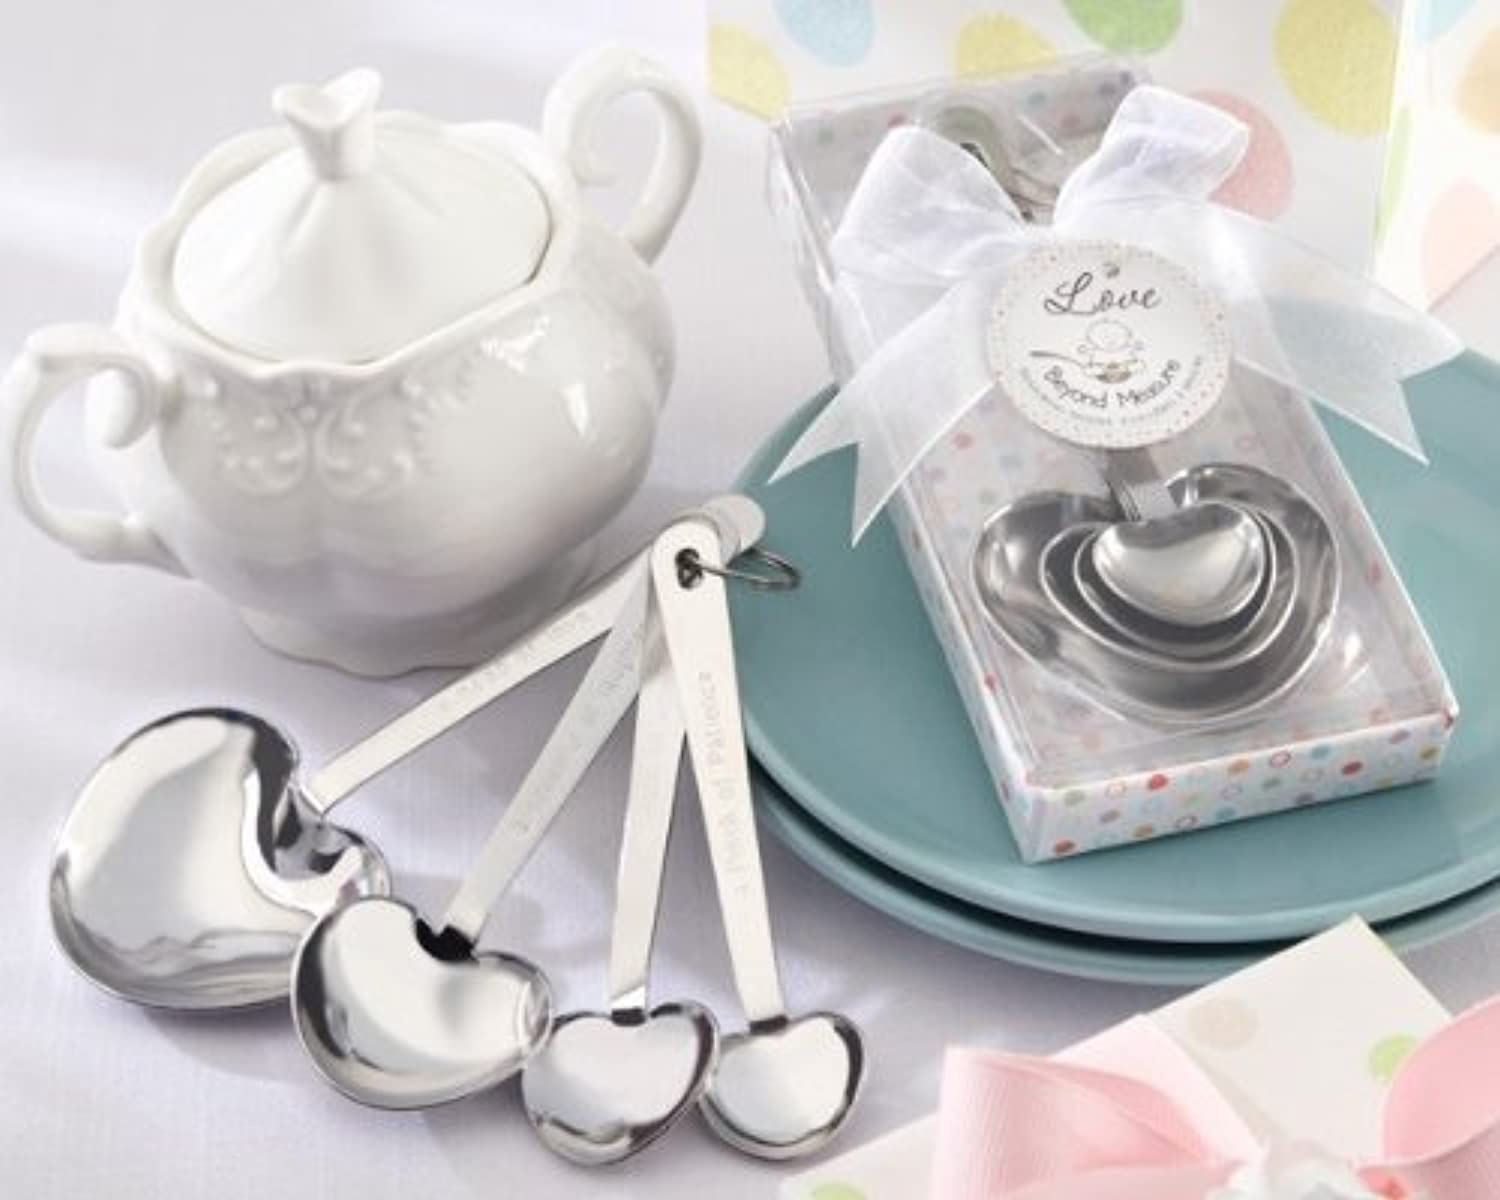 Love Beyond Measure Stainless-Steel Measuring Spoons Baby Shower Favor - Total 48 sets by Kateaspen [並行輸入品]